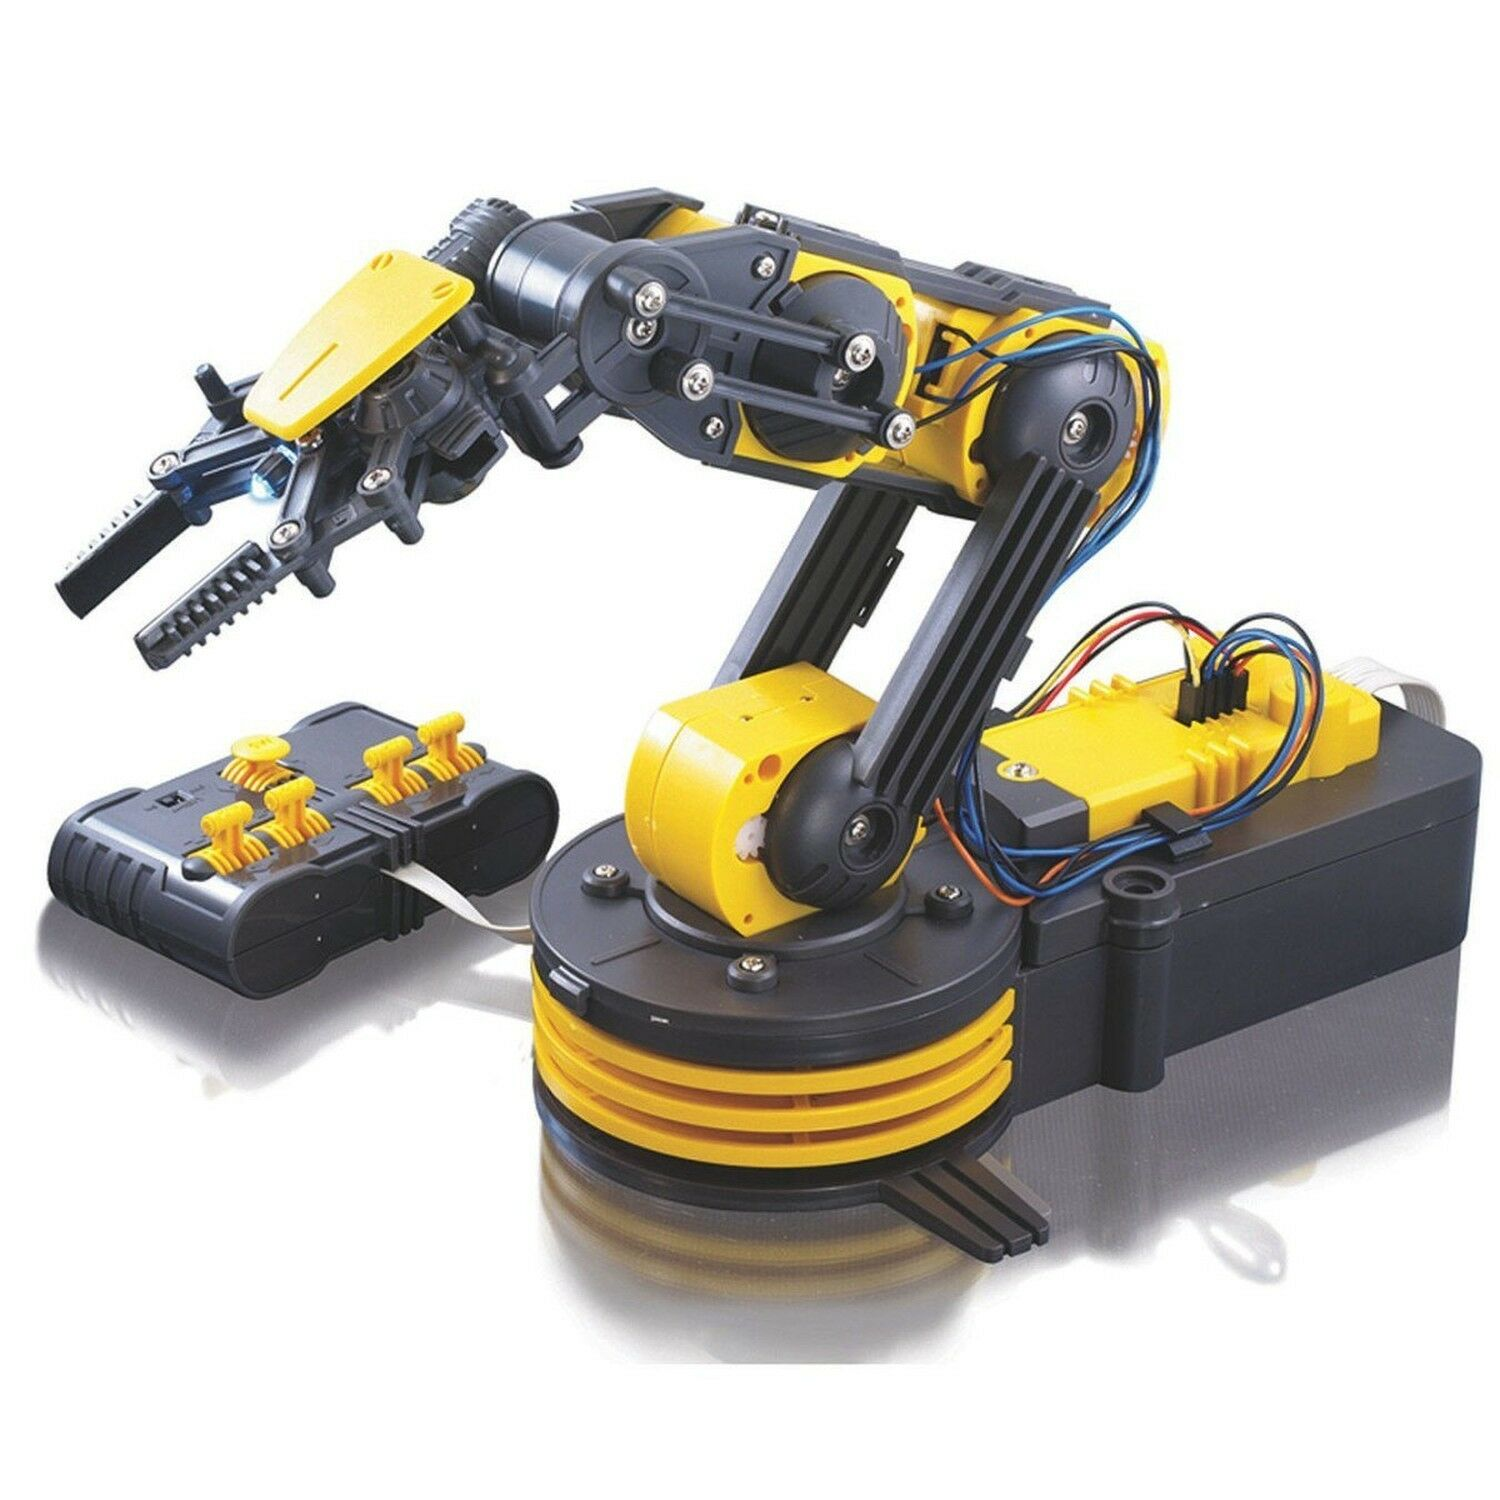 Robotic Arm Mechanical Robot Claw Clamp School Science Science Science Project Kit Kids Toy fa5481